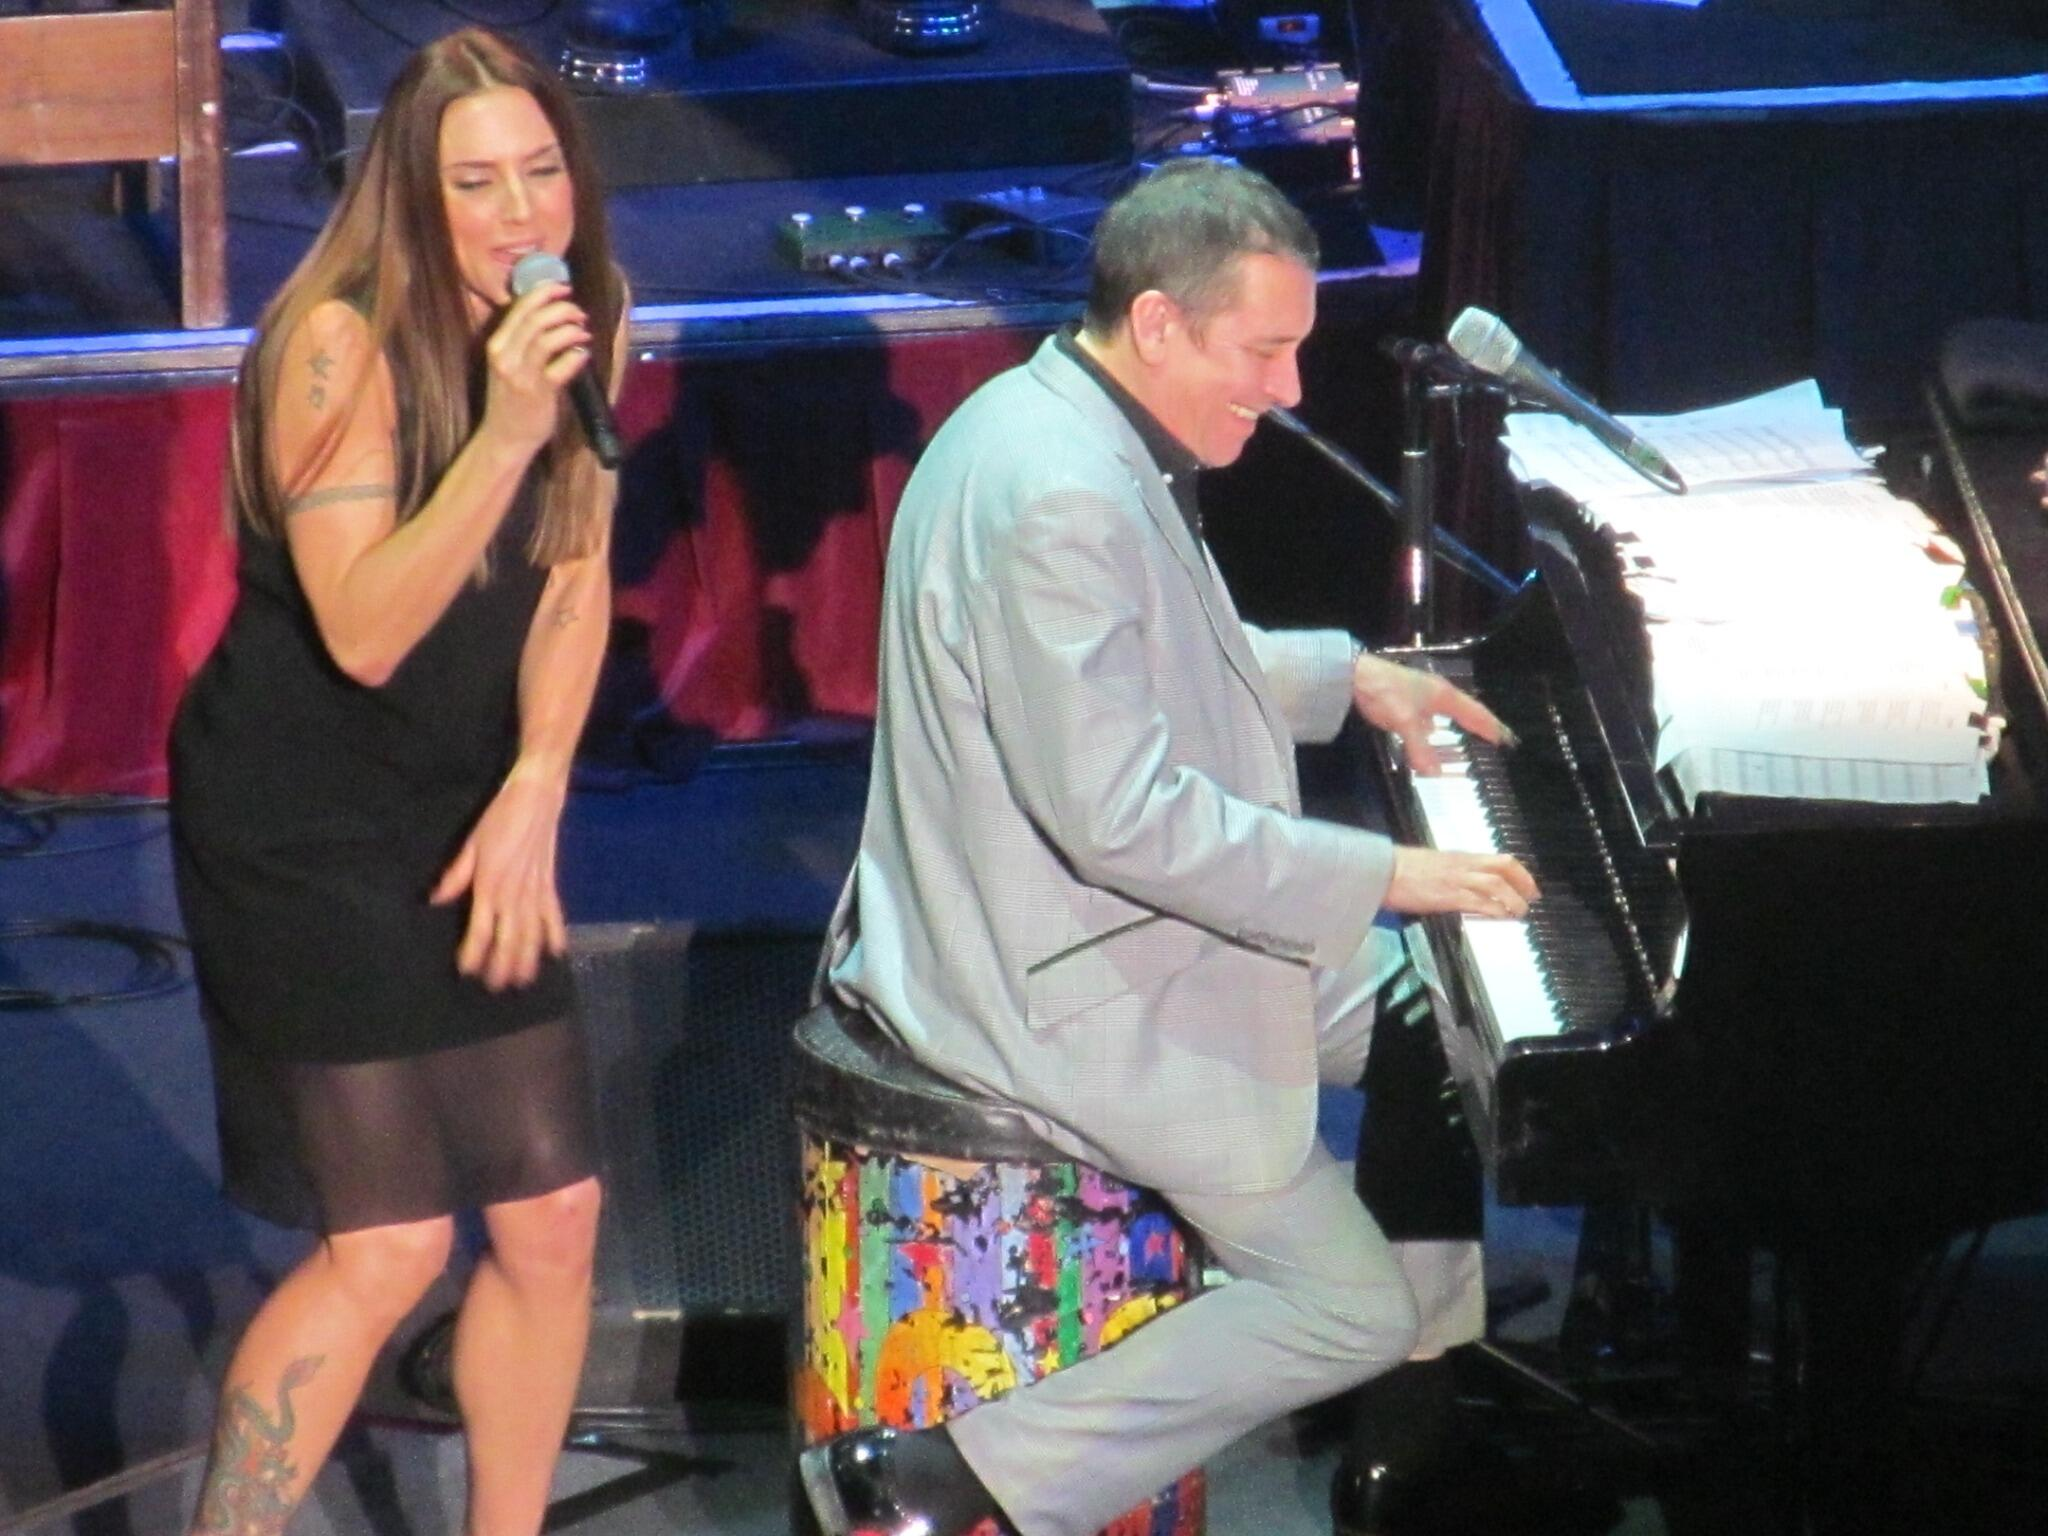 Thank you Manchester! 😍 RT @MelHarper1: mel c and Jools Holland last night !! Amazing!! @MelanieCmusic @JoolsBand http://t.co/tzsEEHSL2b